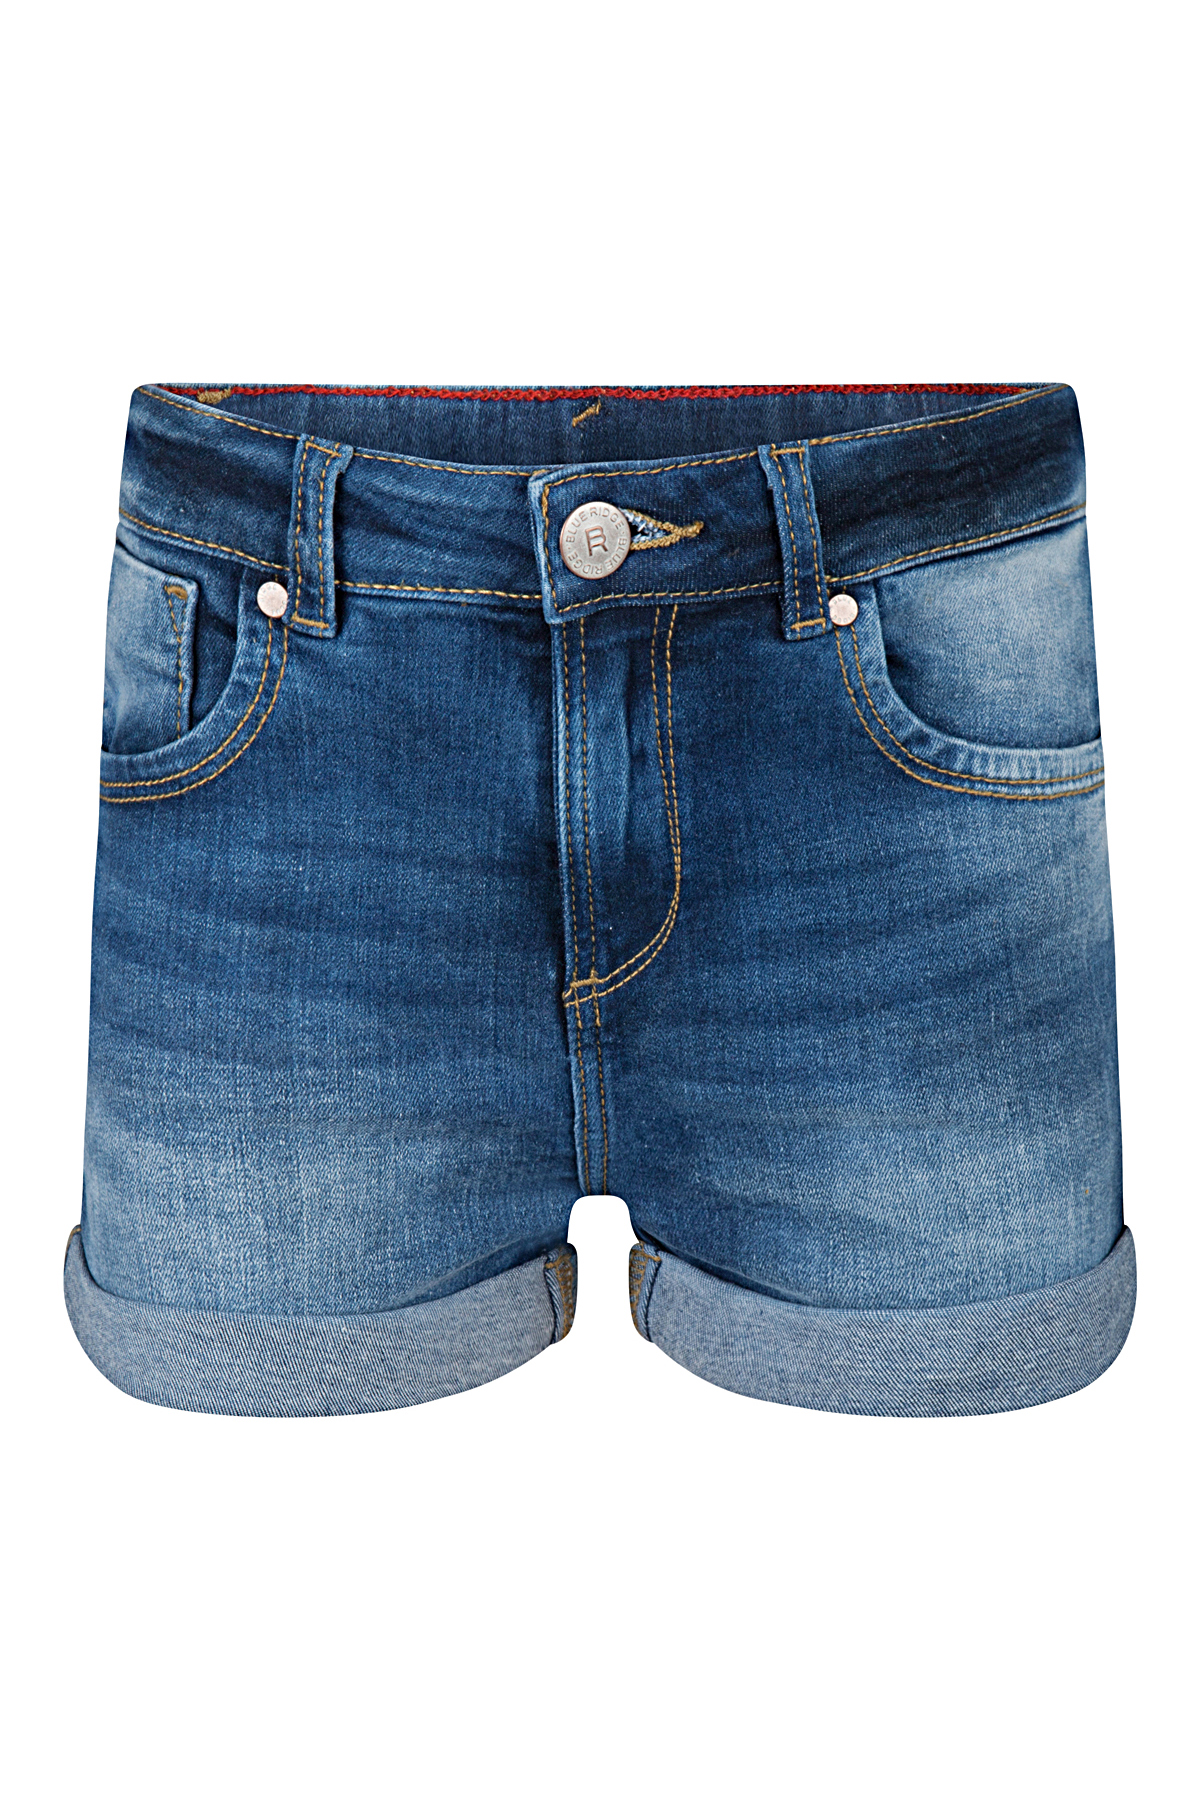 ... Short jog denim fille Bleu ... 2120445907b